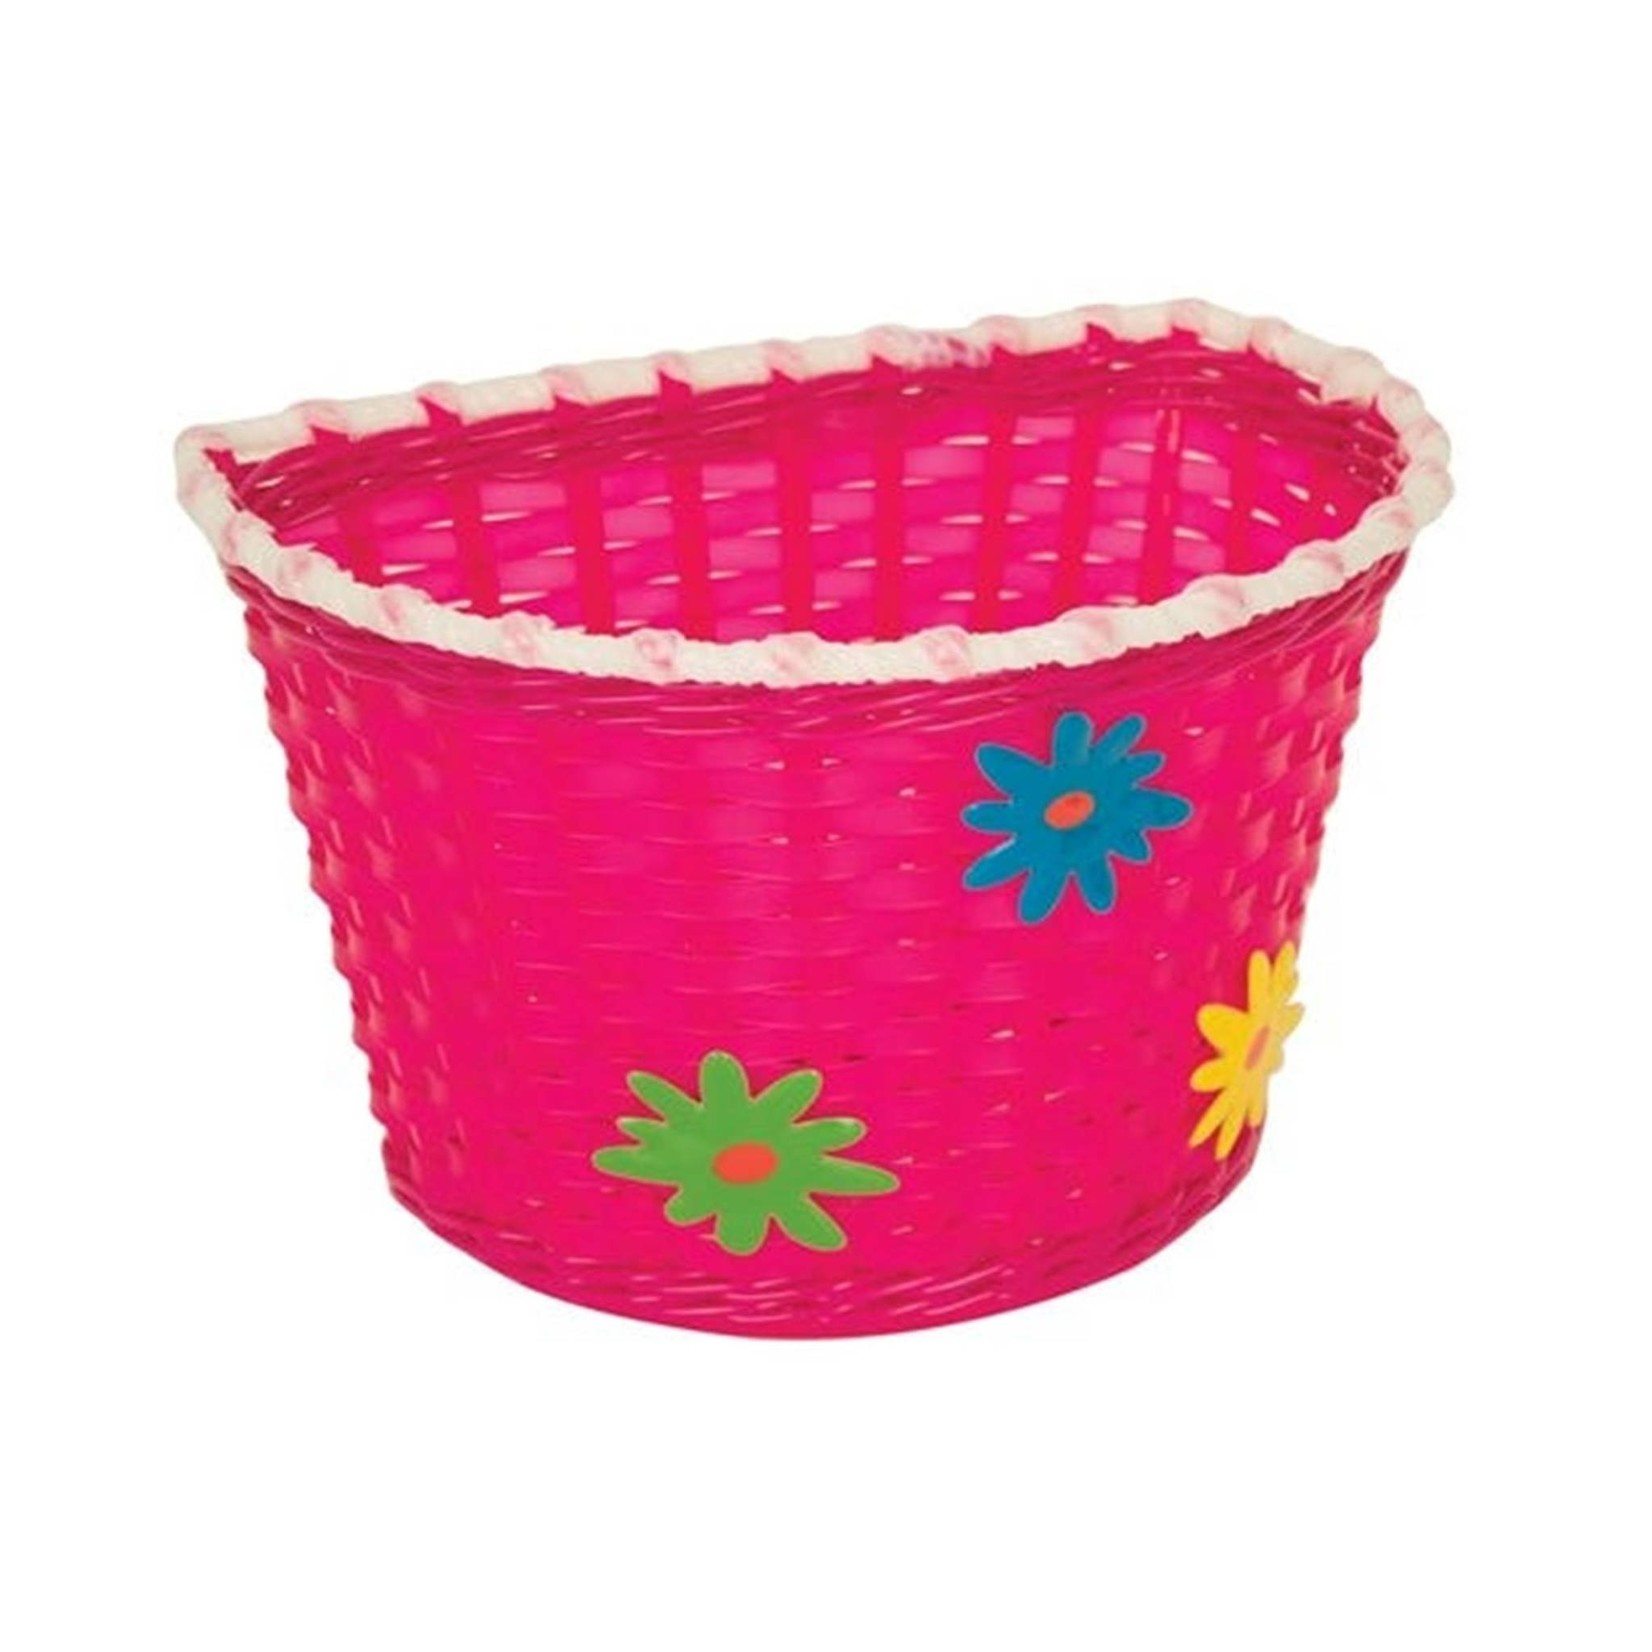 BikeCorp Kids Bicycle Basket Pink with Flowers